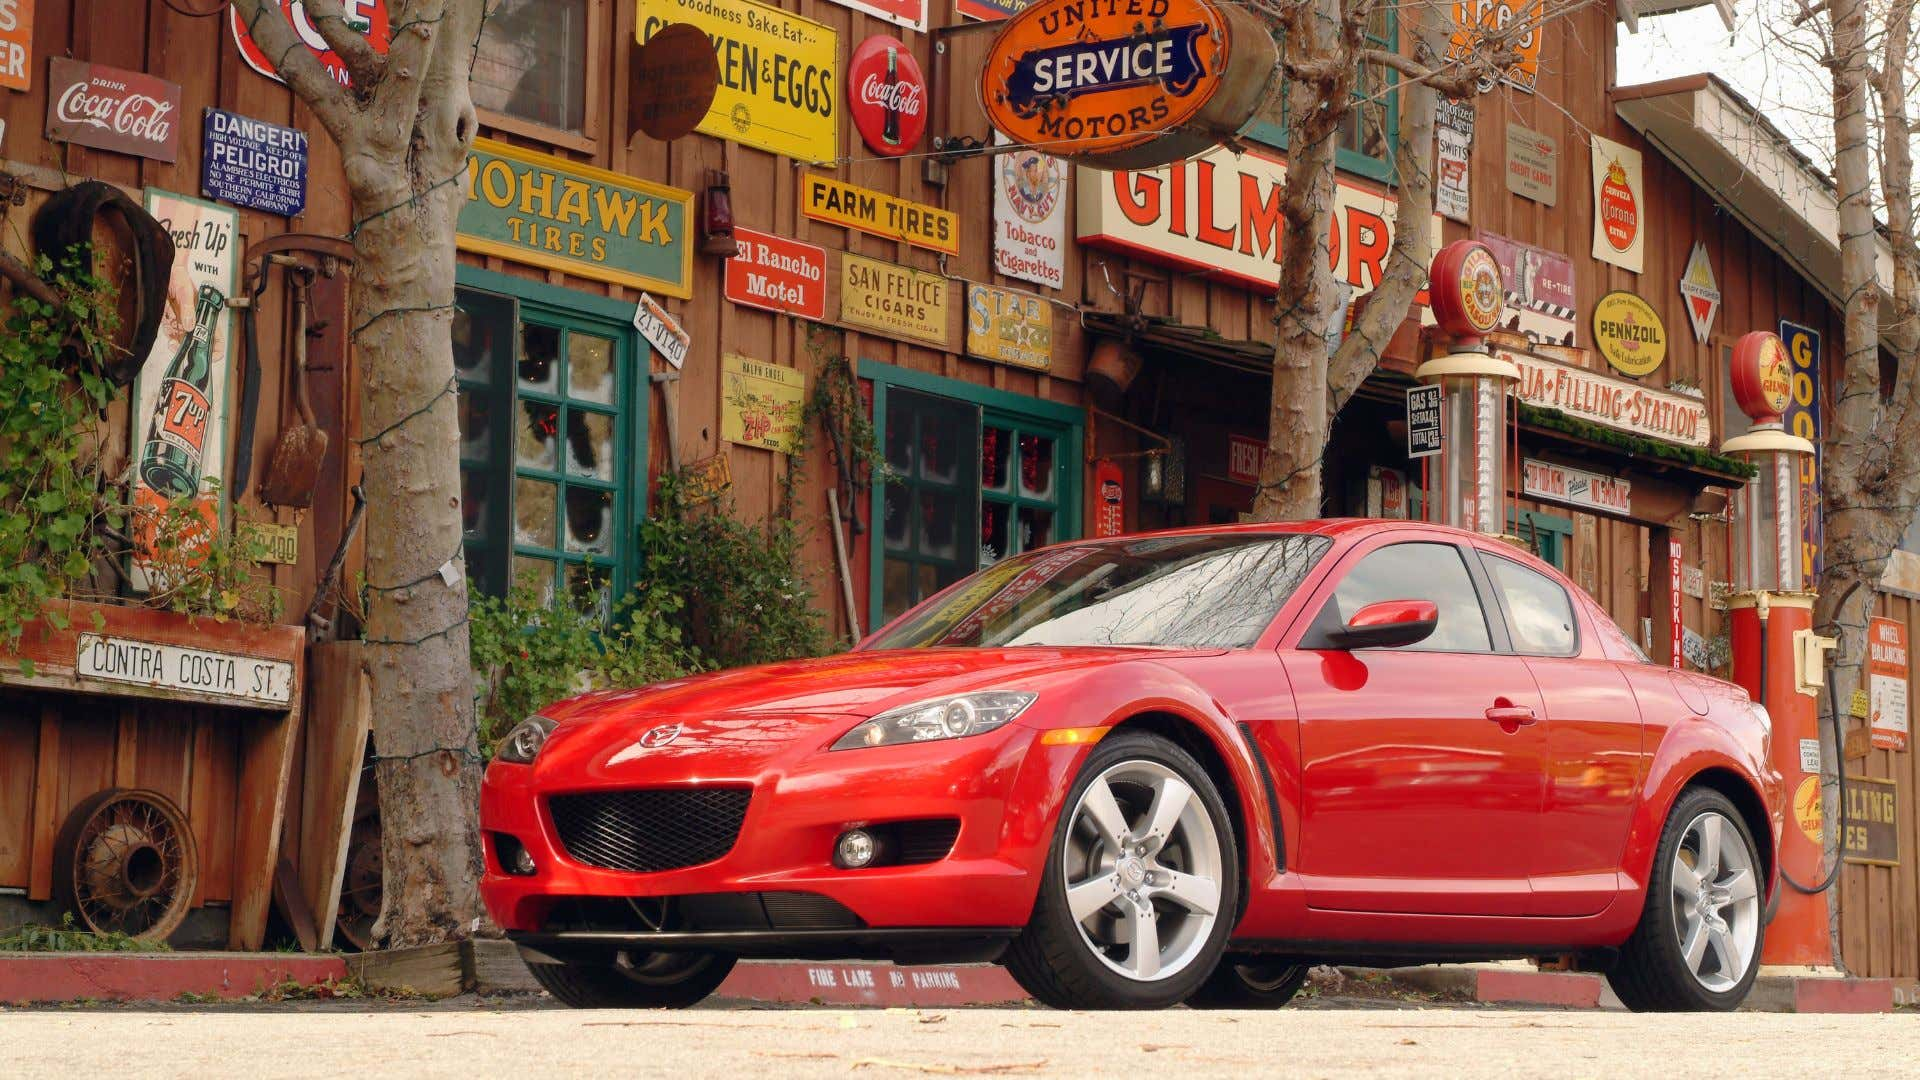 Our wallets ache whenever we see an RX-8.